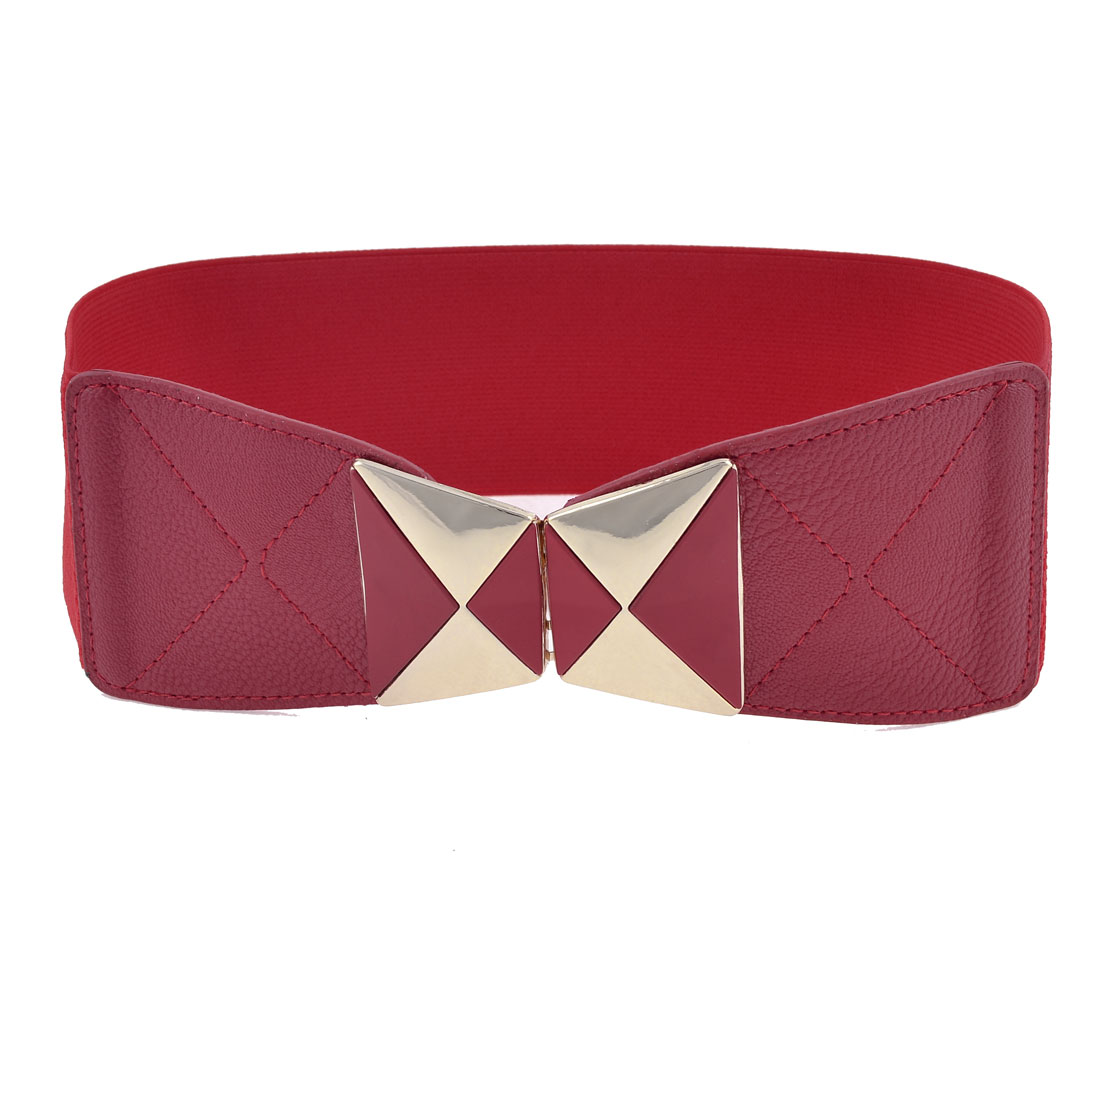 Dual Trapezoid Interlocking Closure Elastic Waistbelt Waist Belt Red for Woman